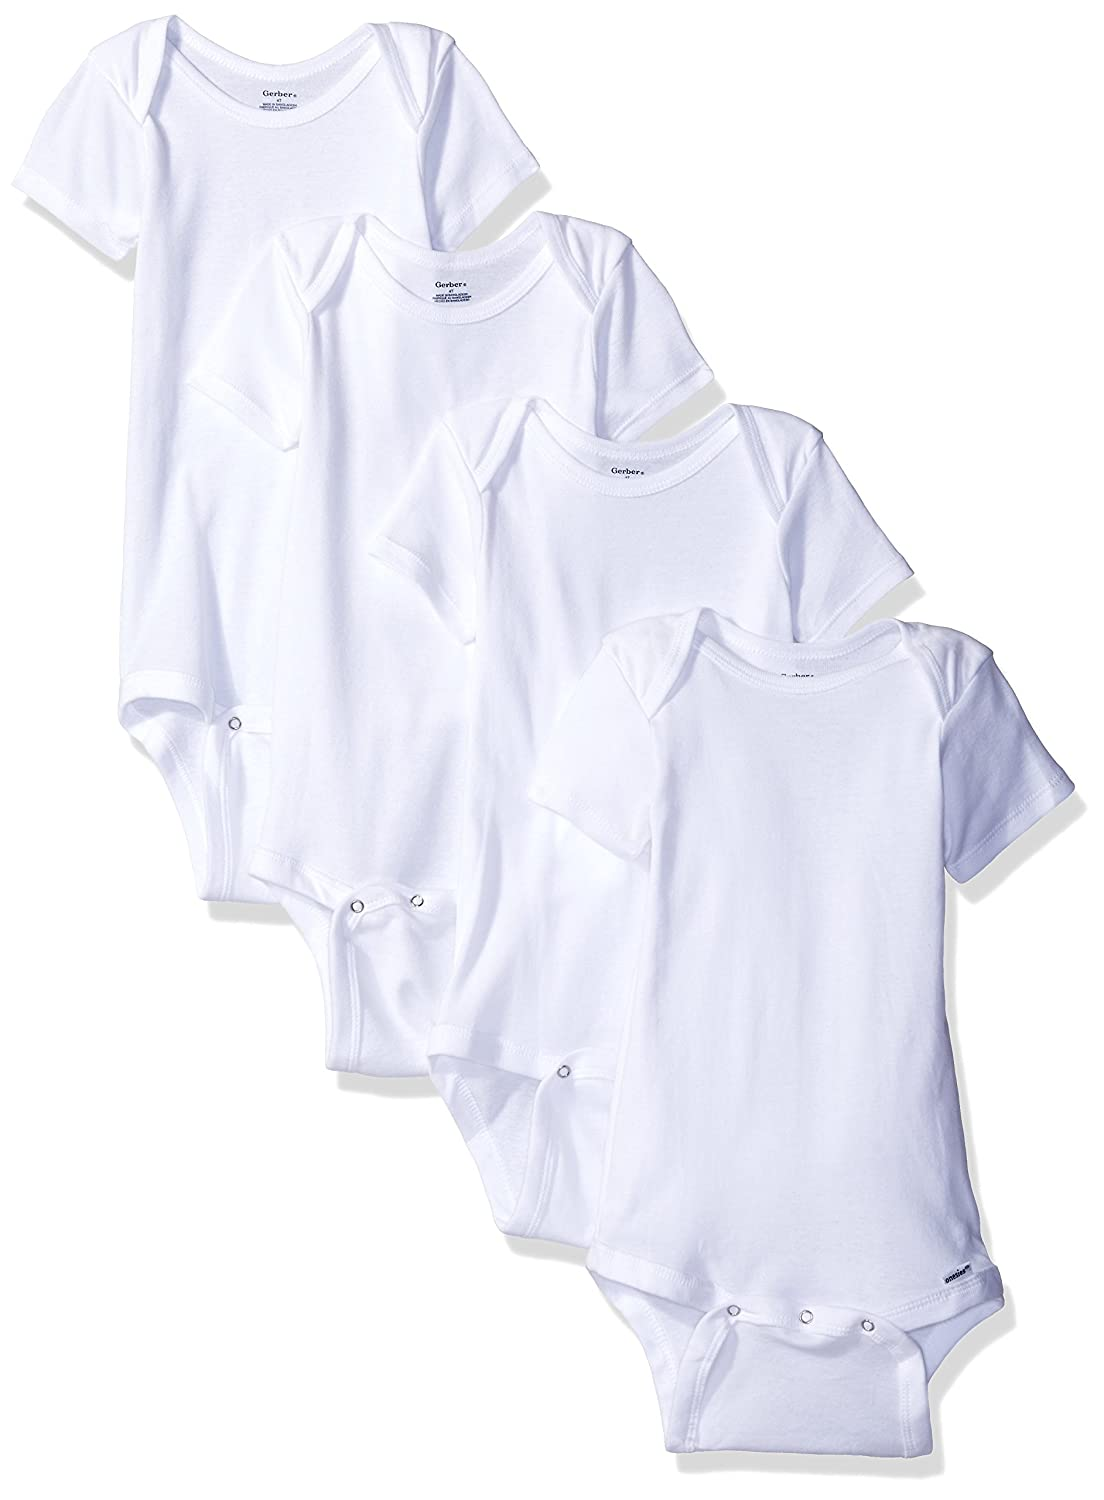 Gerber Baby 4 Pack Onesies, White, 3T Gerber Children's Apparel 68836416A10103T